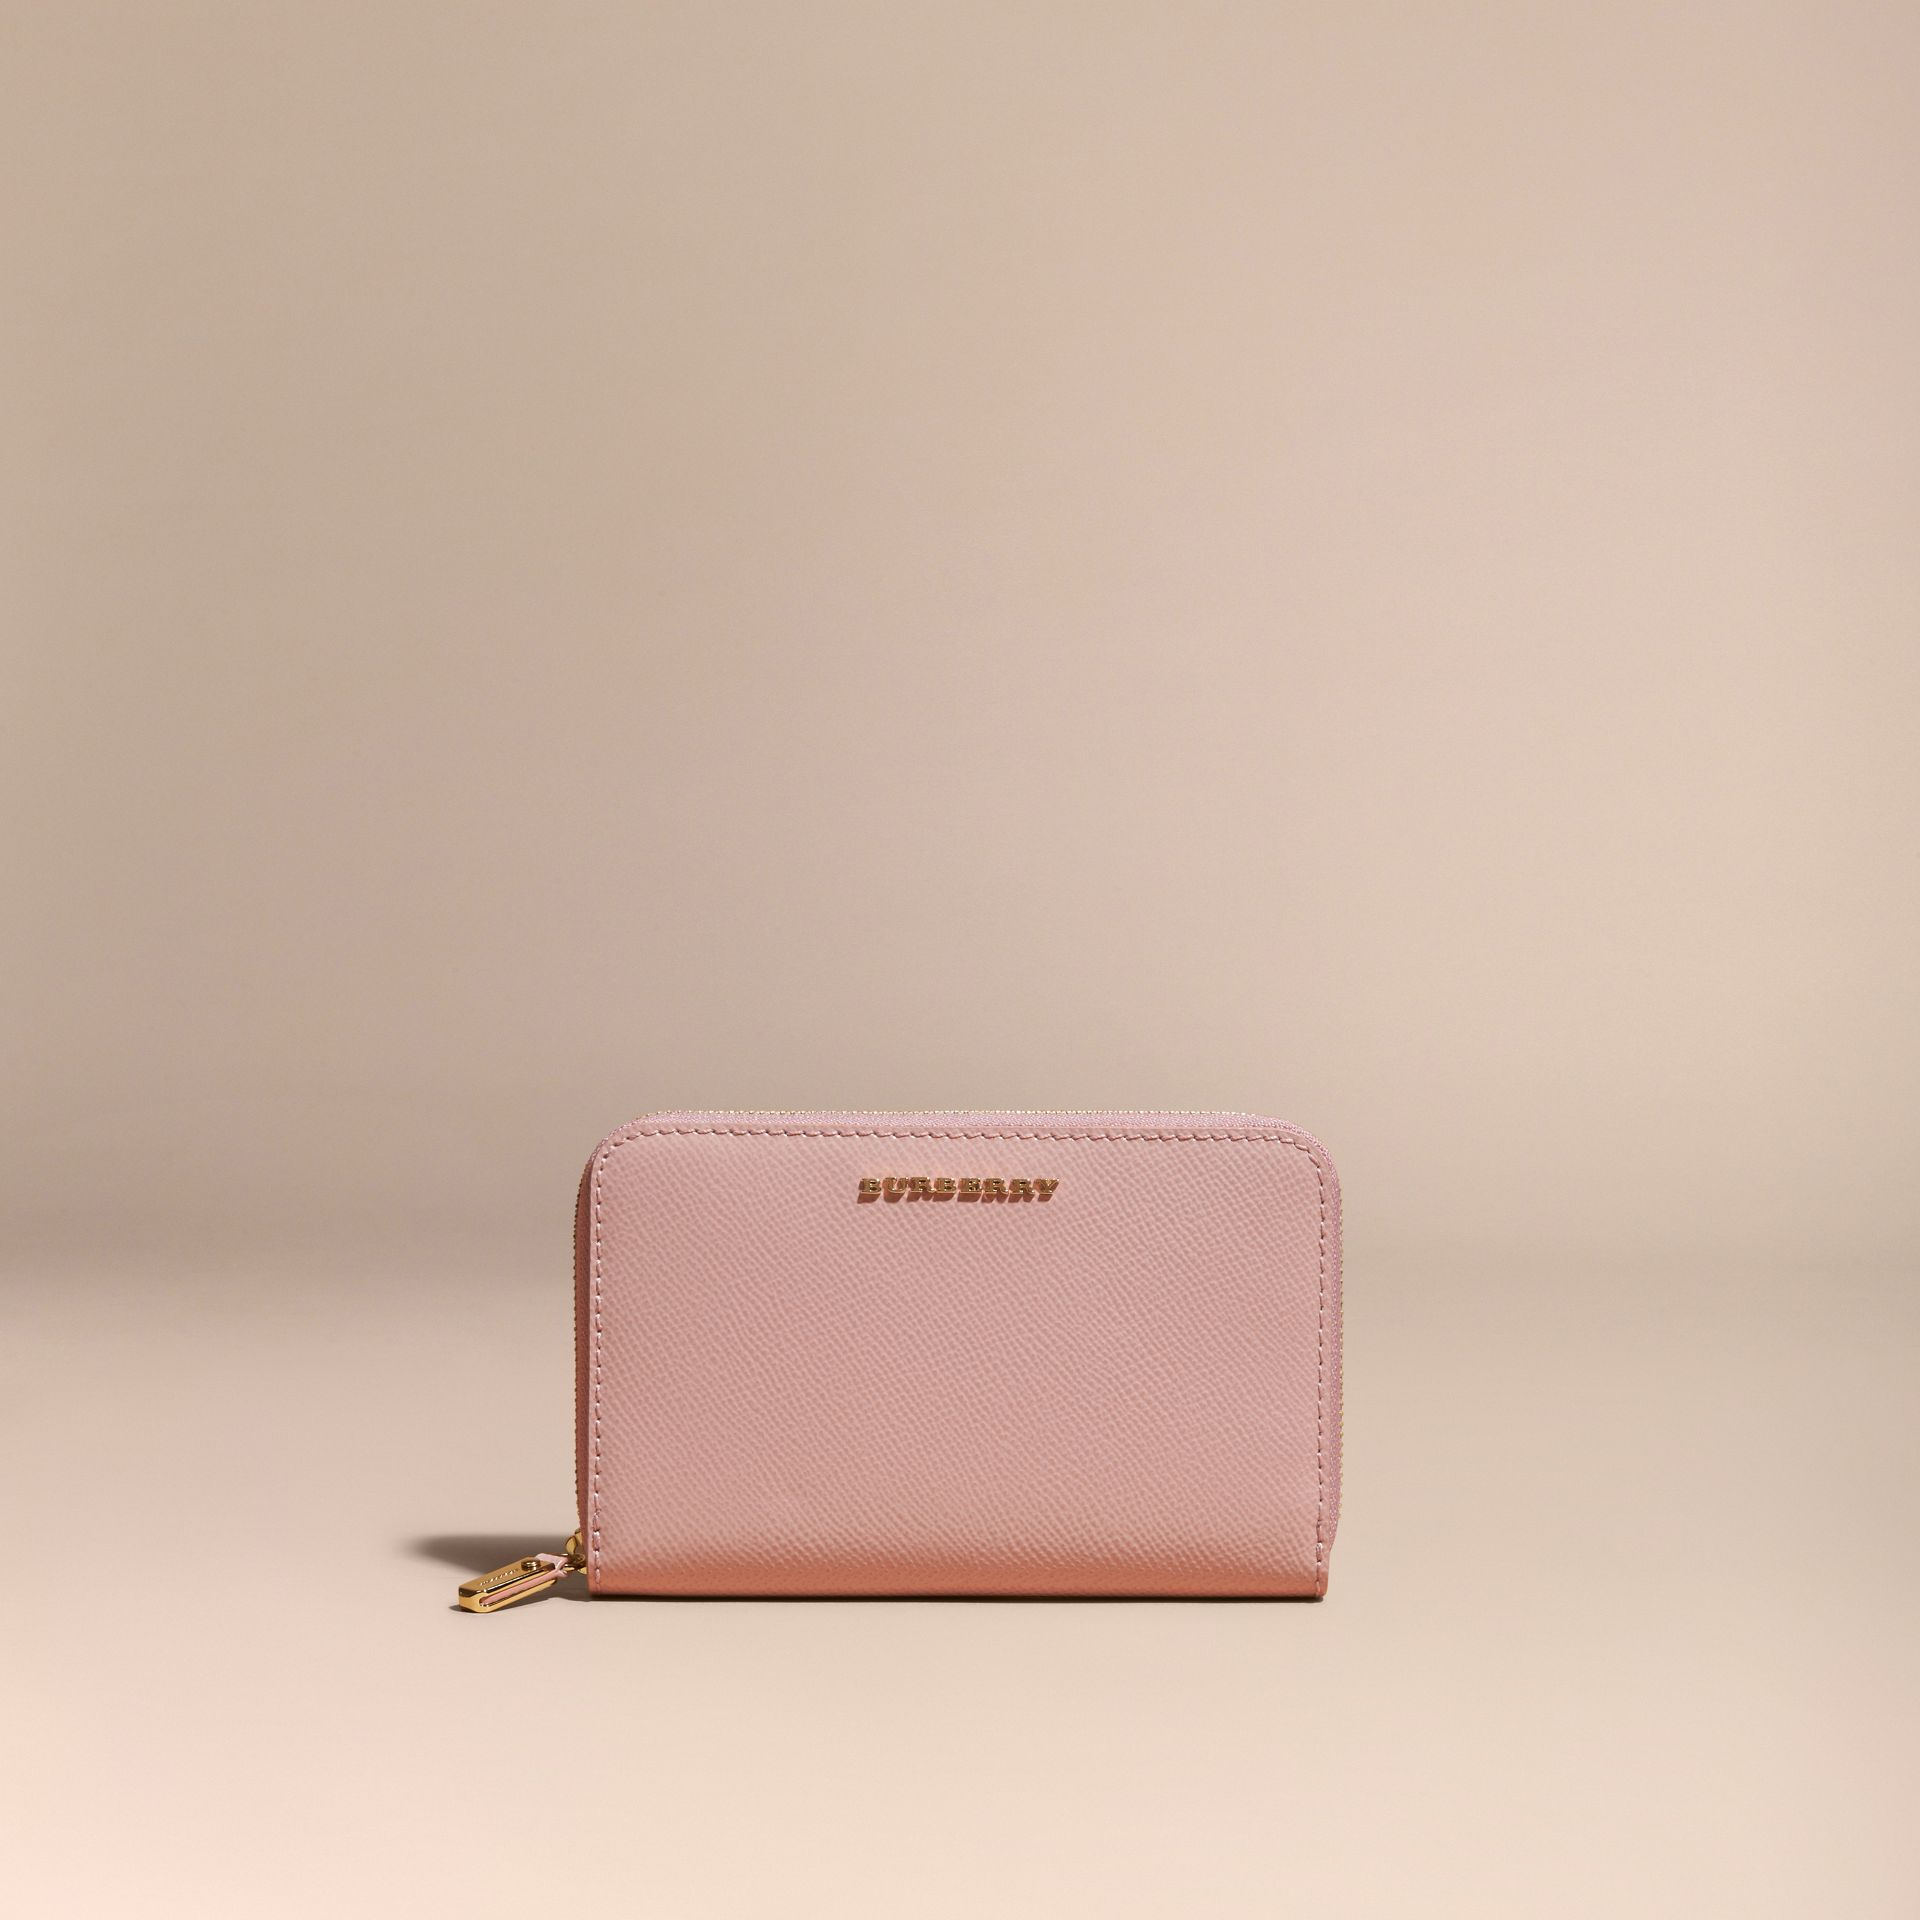 Patent London Leather Ziparound Wallet in Ash Rose - gallery image 6